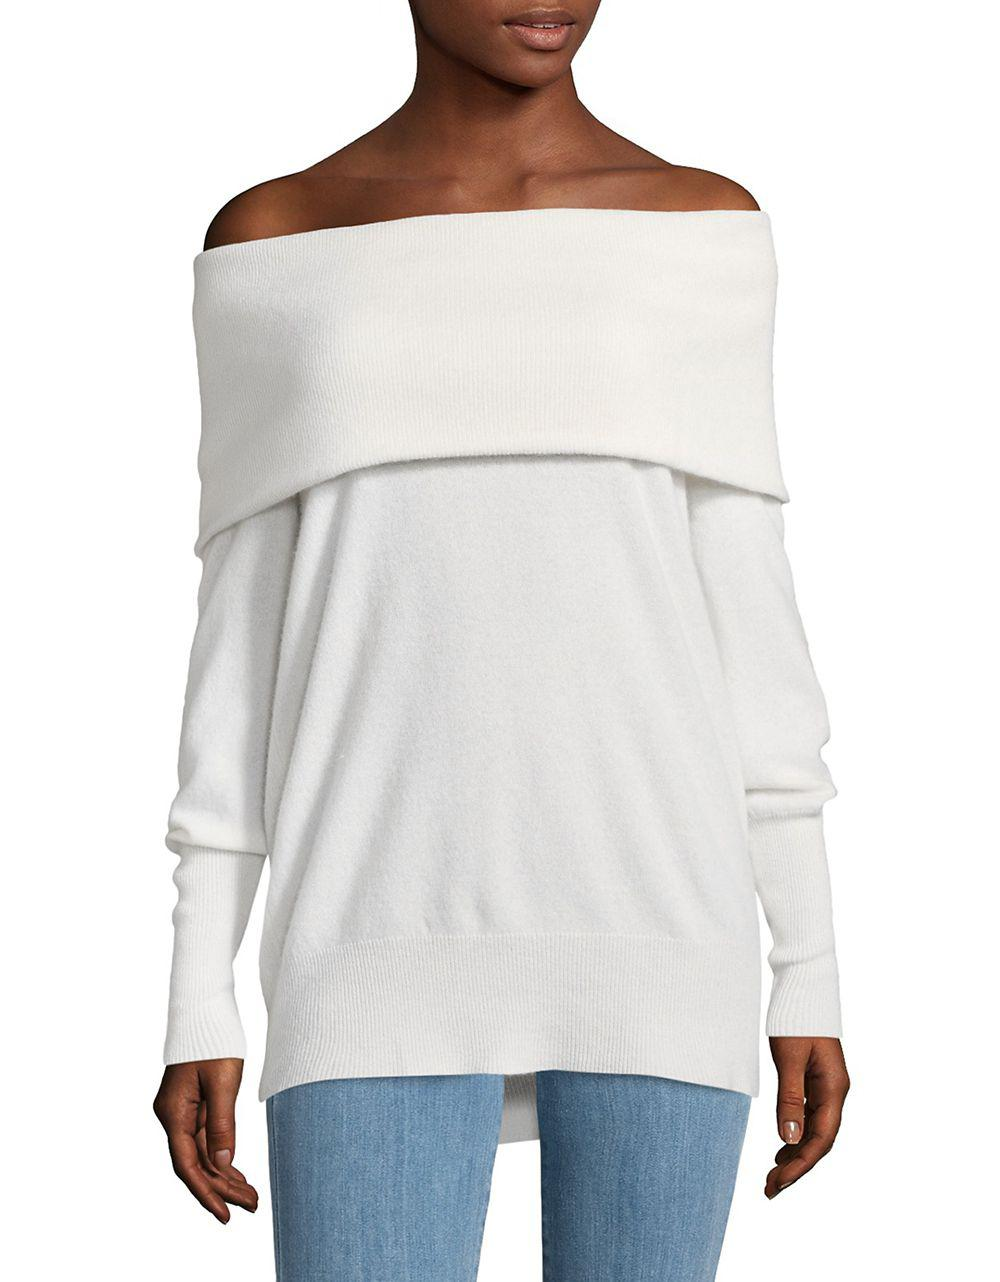 Lord & taylor Off-the-shoulder Cashmere Sweater in White | Lyst